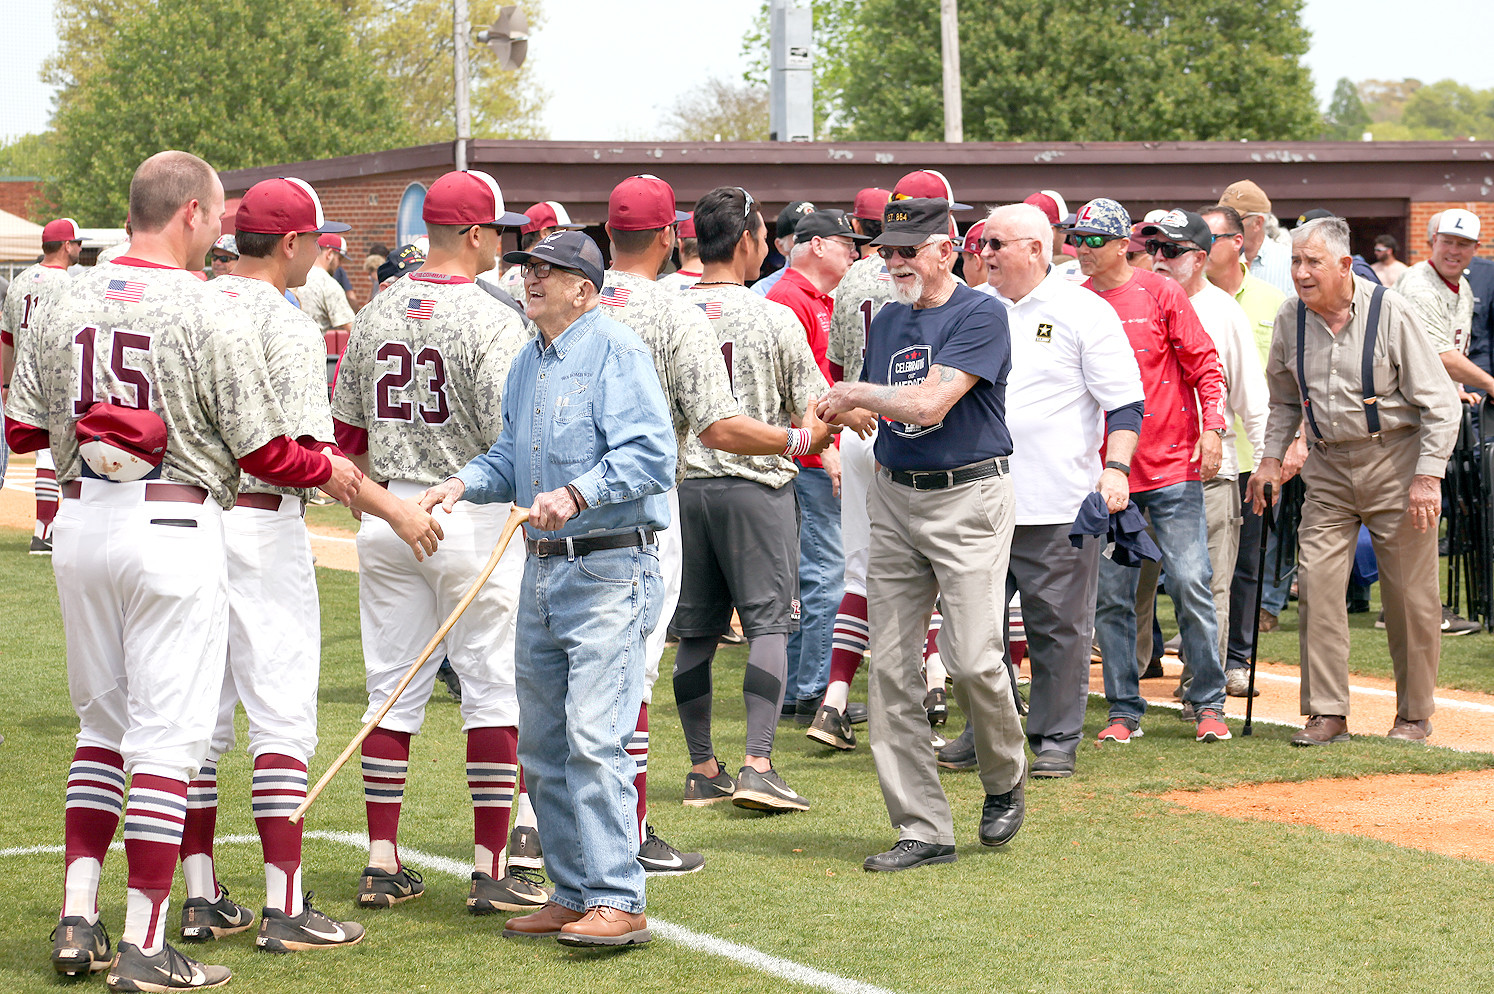 THE LEE UNIVERSITY baseball team members shake hands with the veterans as the leave the field at Saturday's Military Appreciation Day event.